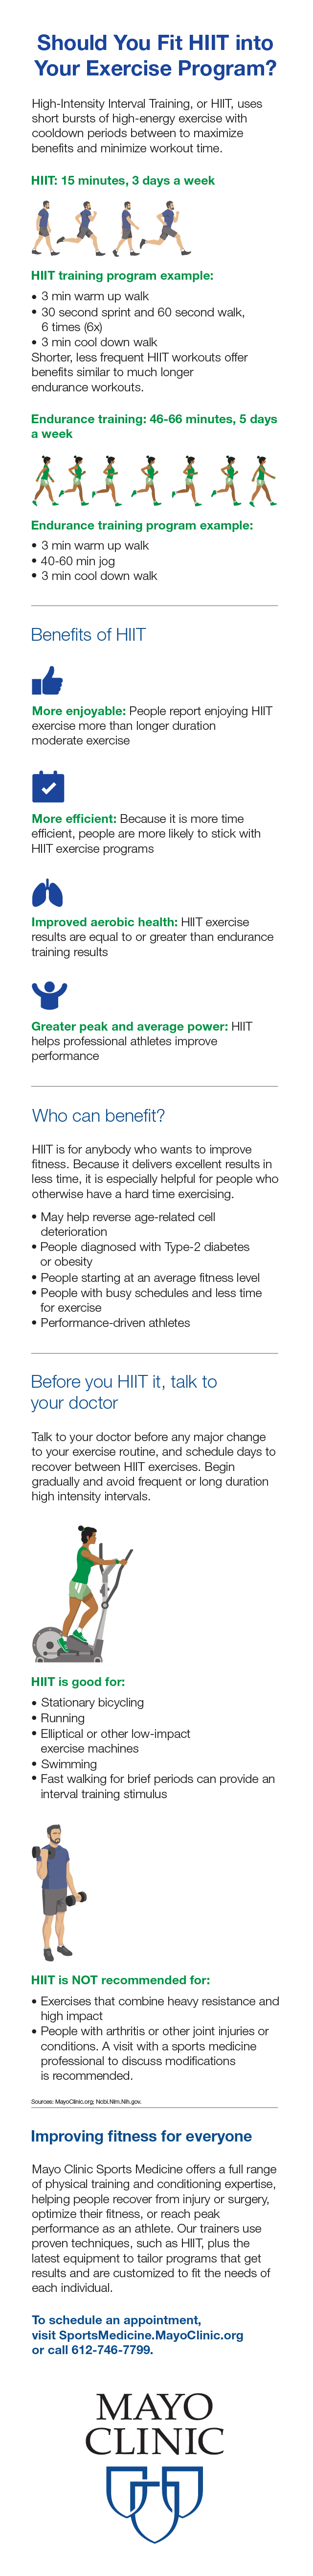 infographic for High Intensity Interval Training (HIIT)